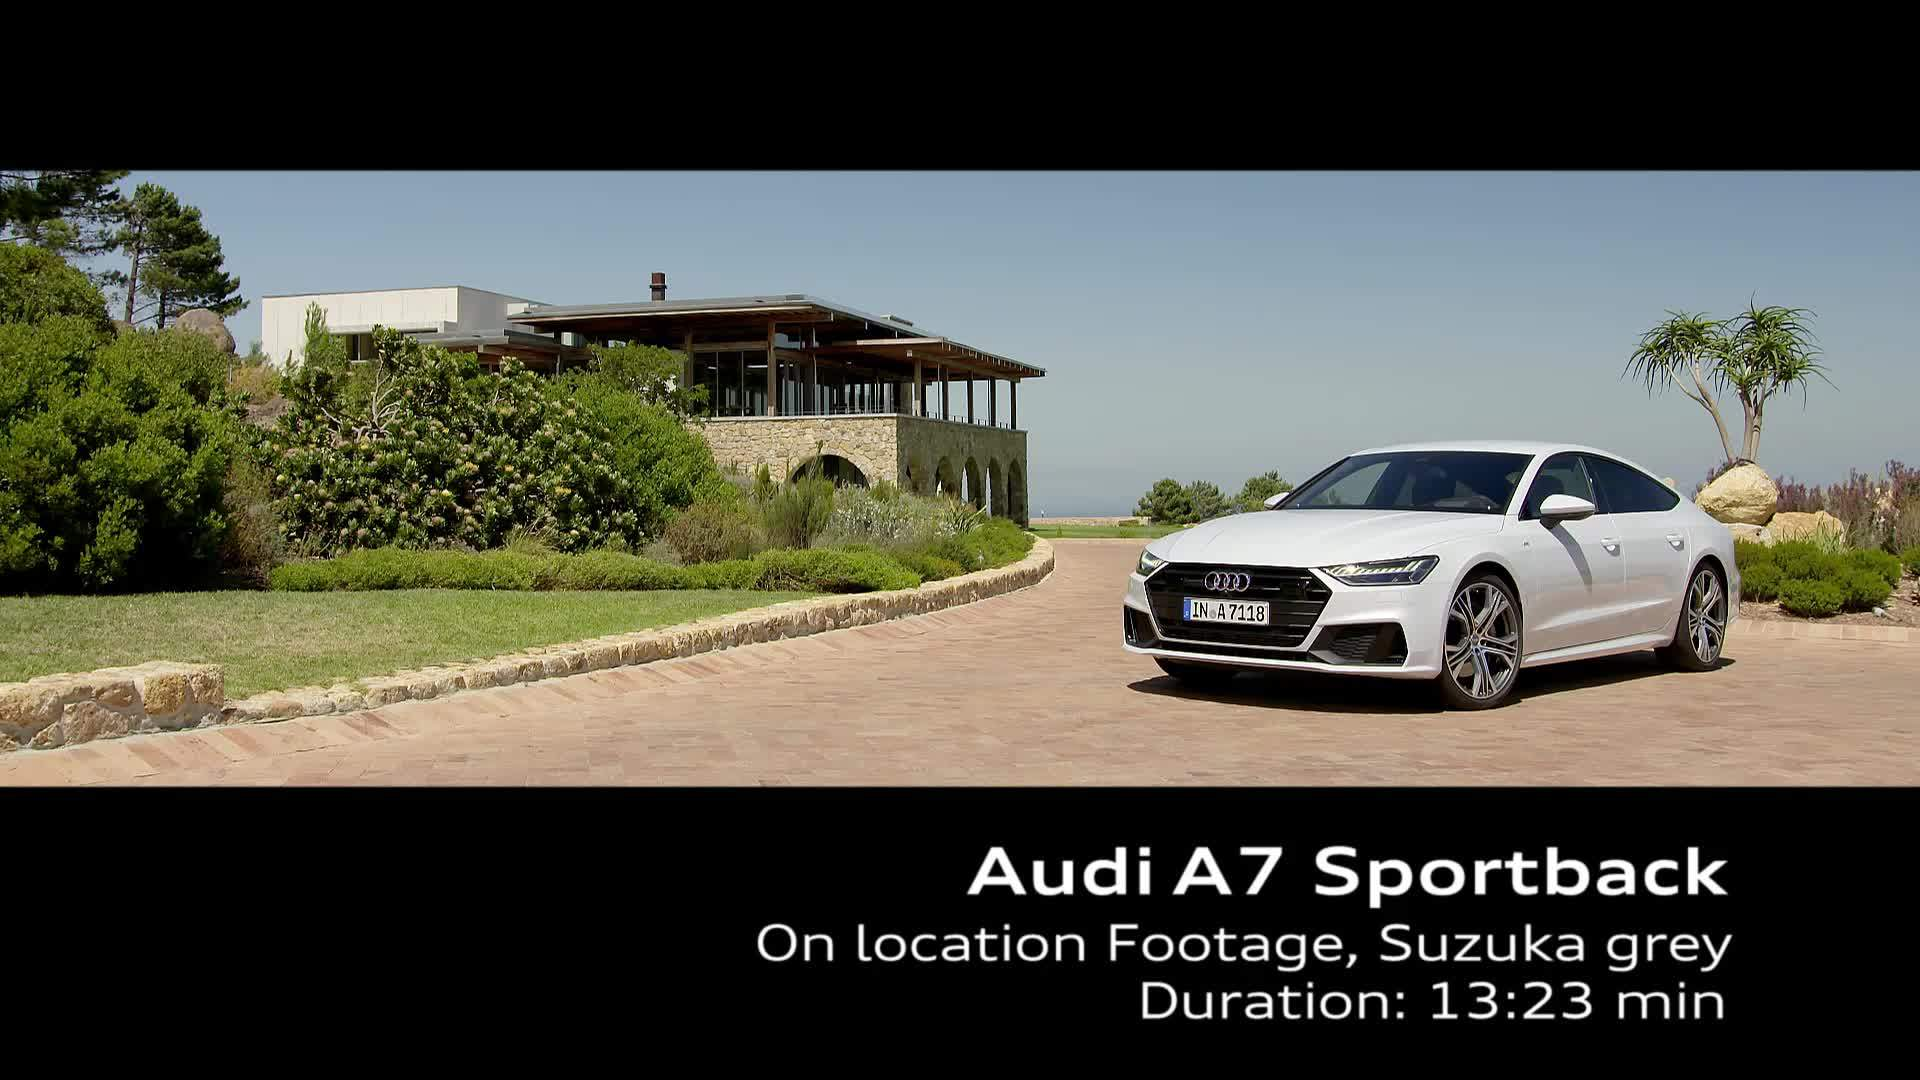 Audi A7 Sportback in Suzuka gray – on Location Footage Kapstadt